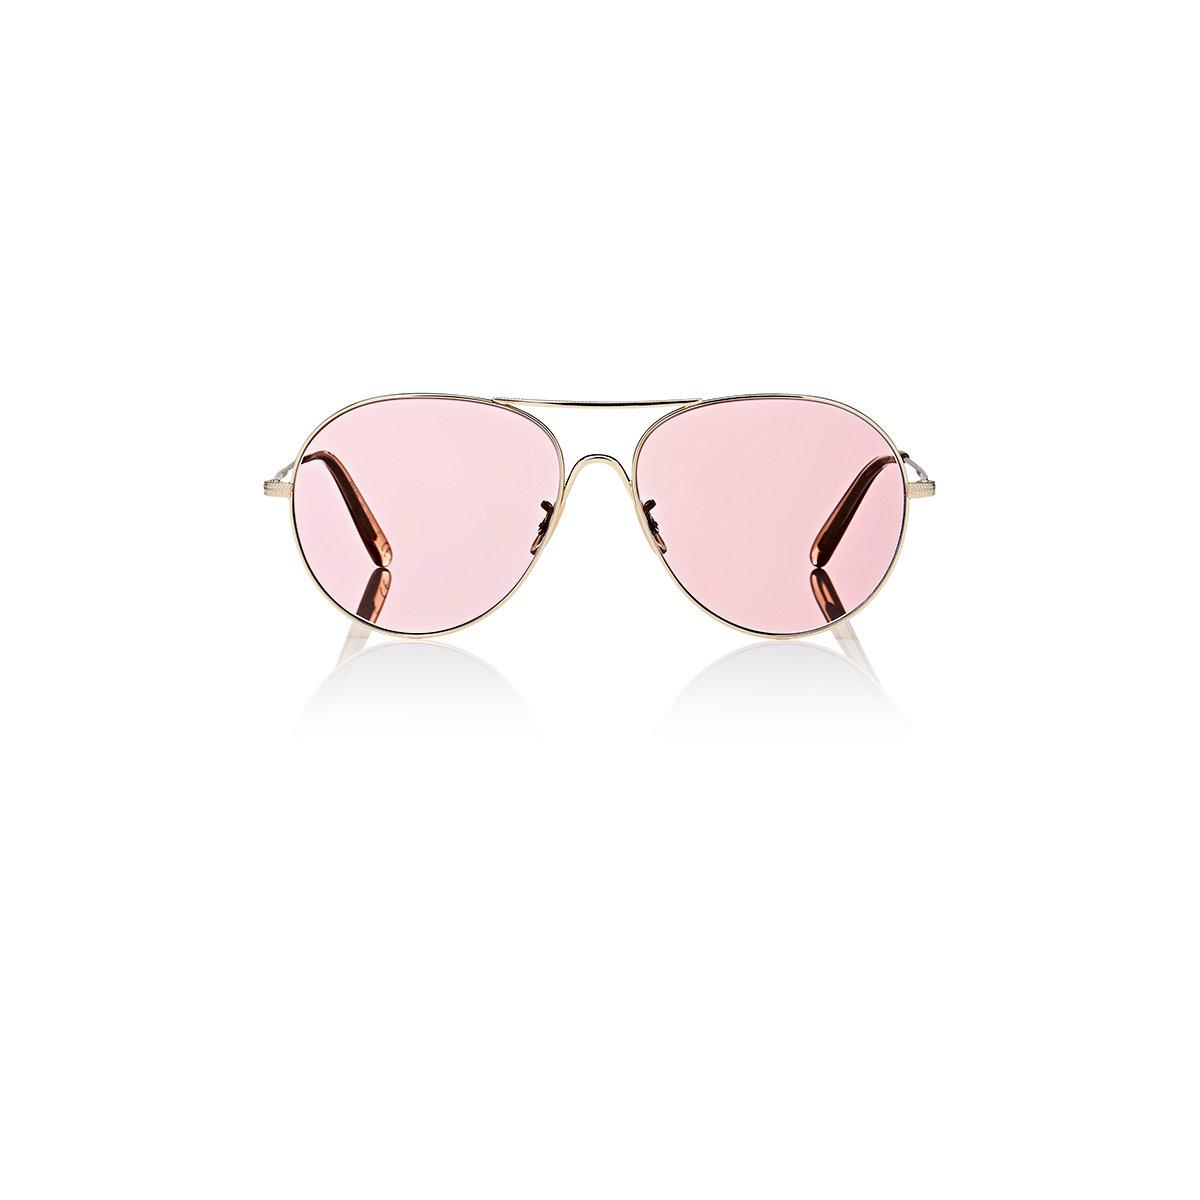 Rockmore aviator sunglasses - Pink & Purple Oliver Peoples gocp9y2T